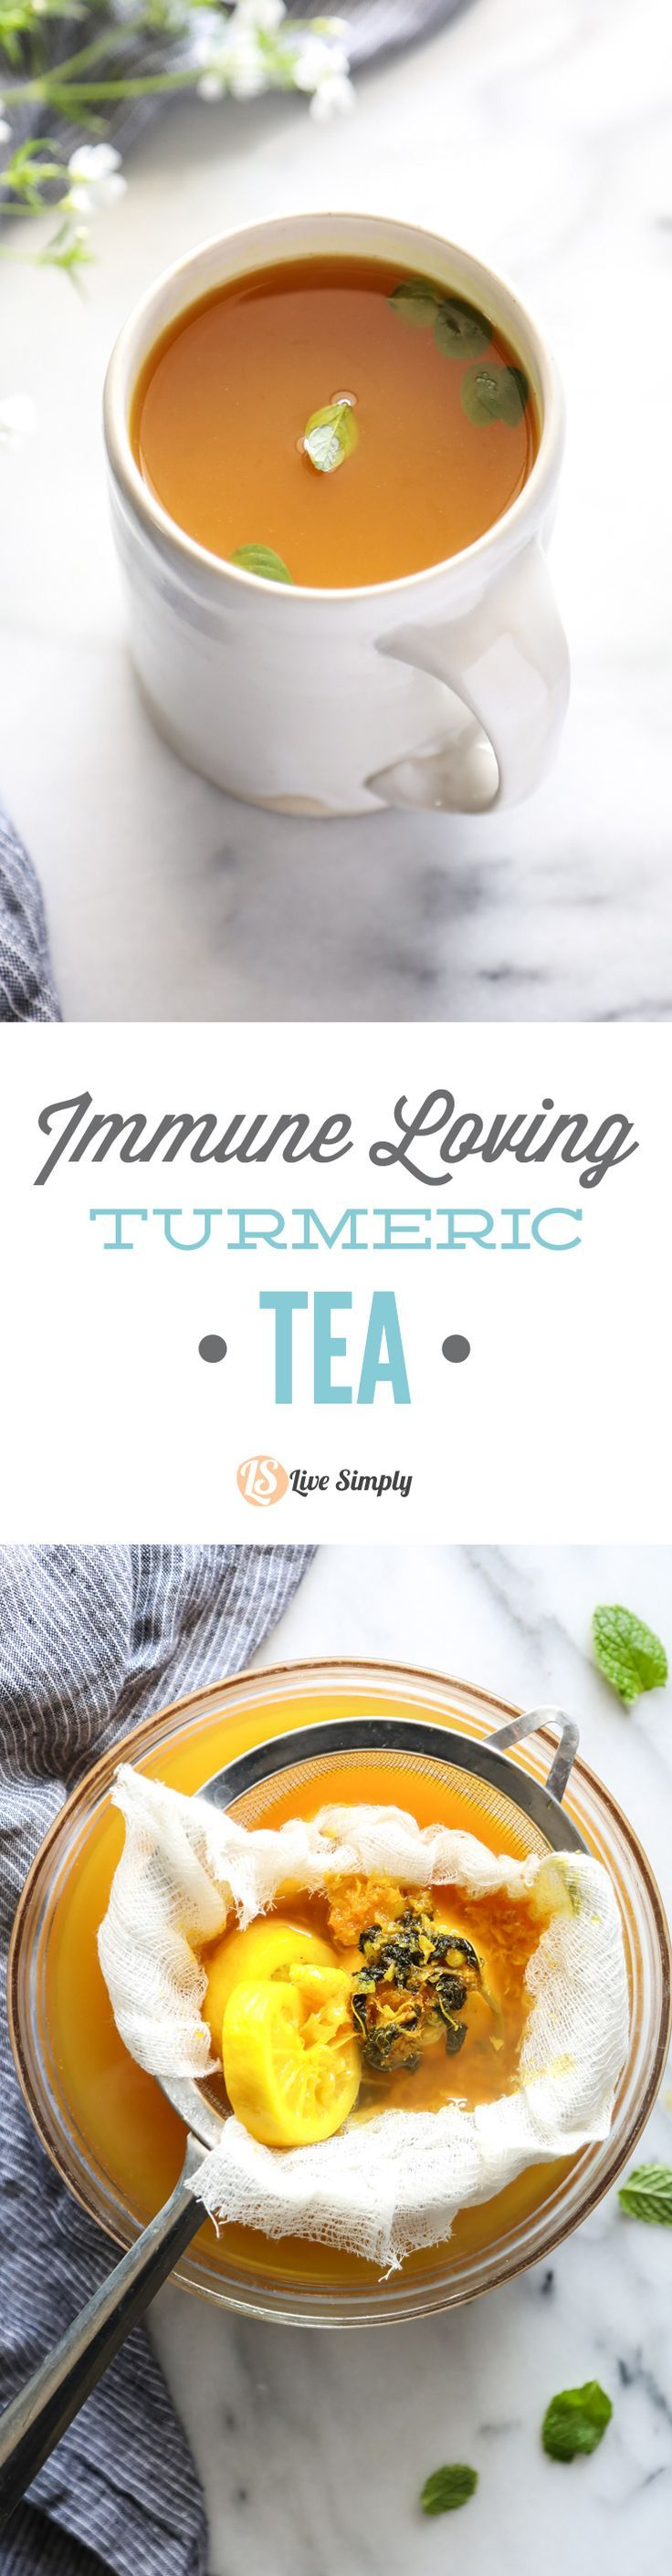 """So good! A homemade turmeric, ginger, lemon, mint, and honey tea. So easy to make. Enjoy daily, and/or when you're feeling """"under the weather."""""""